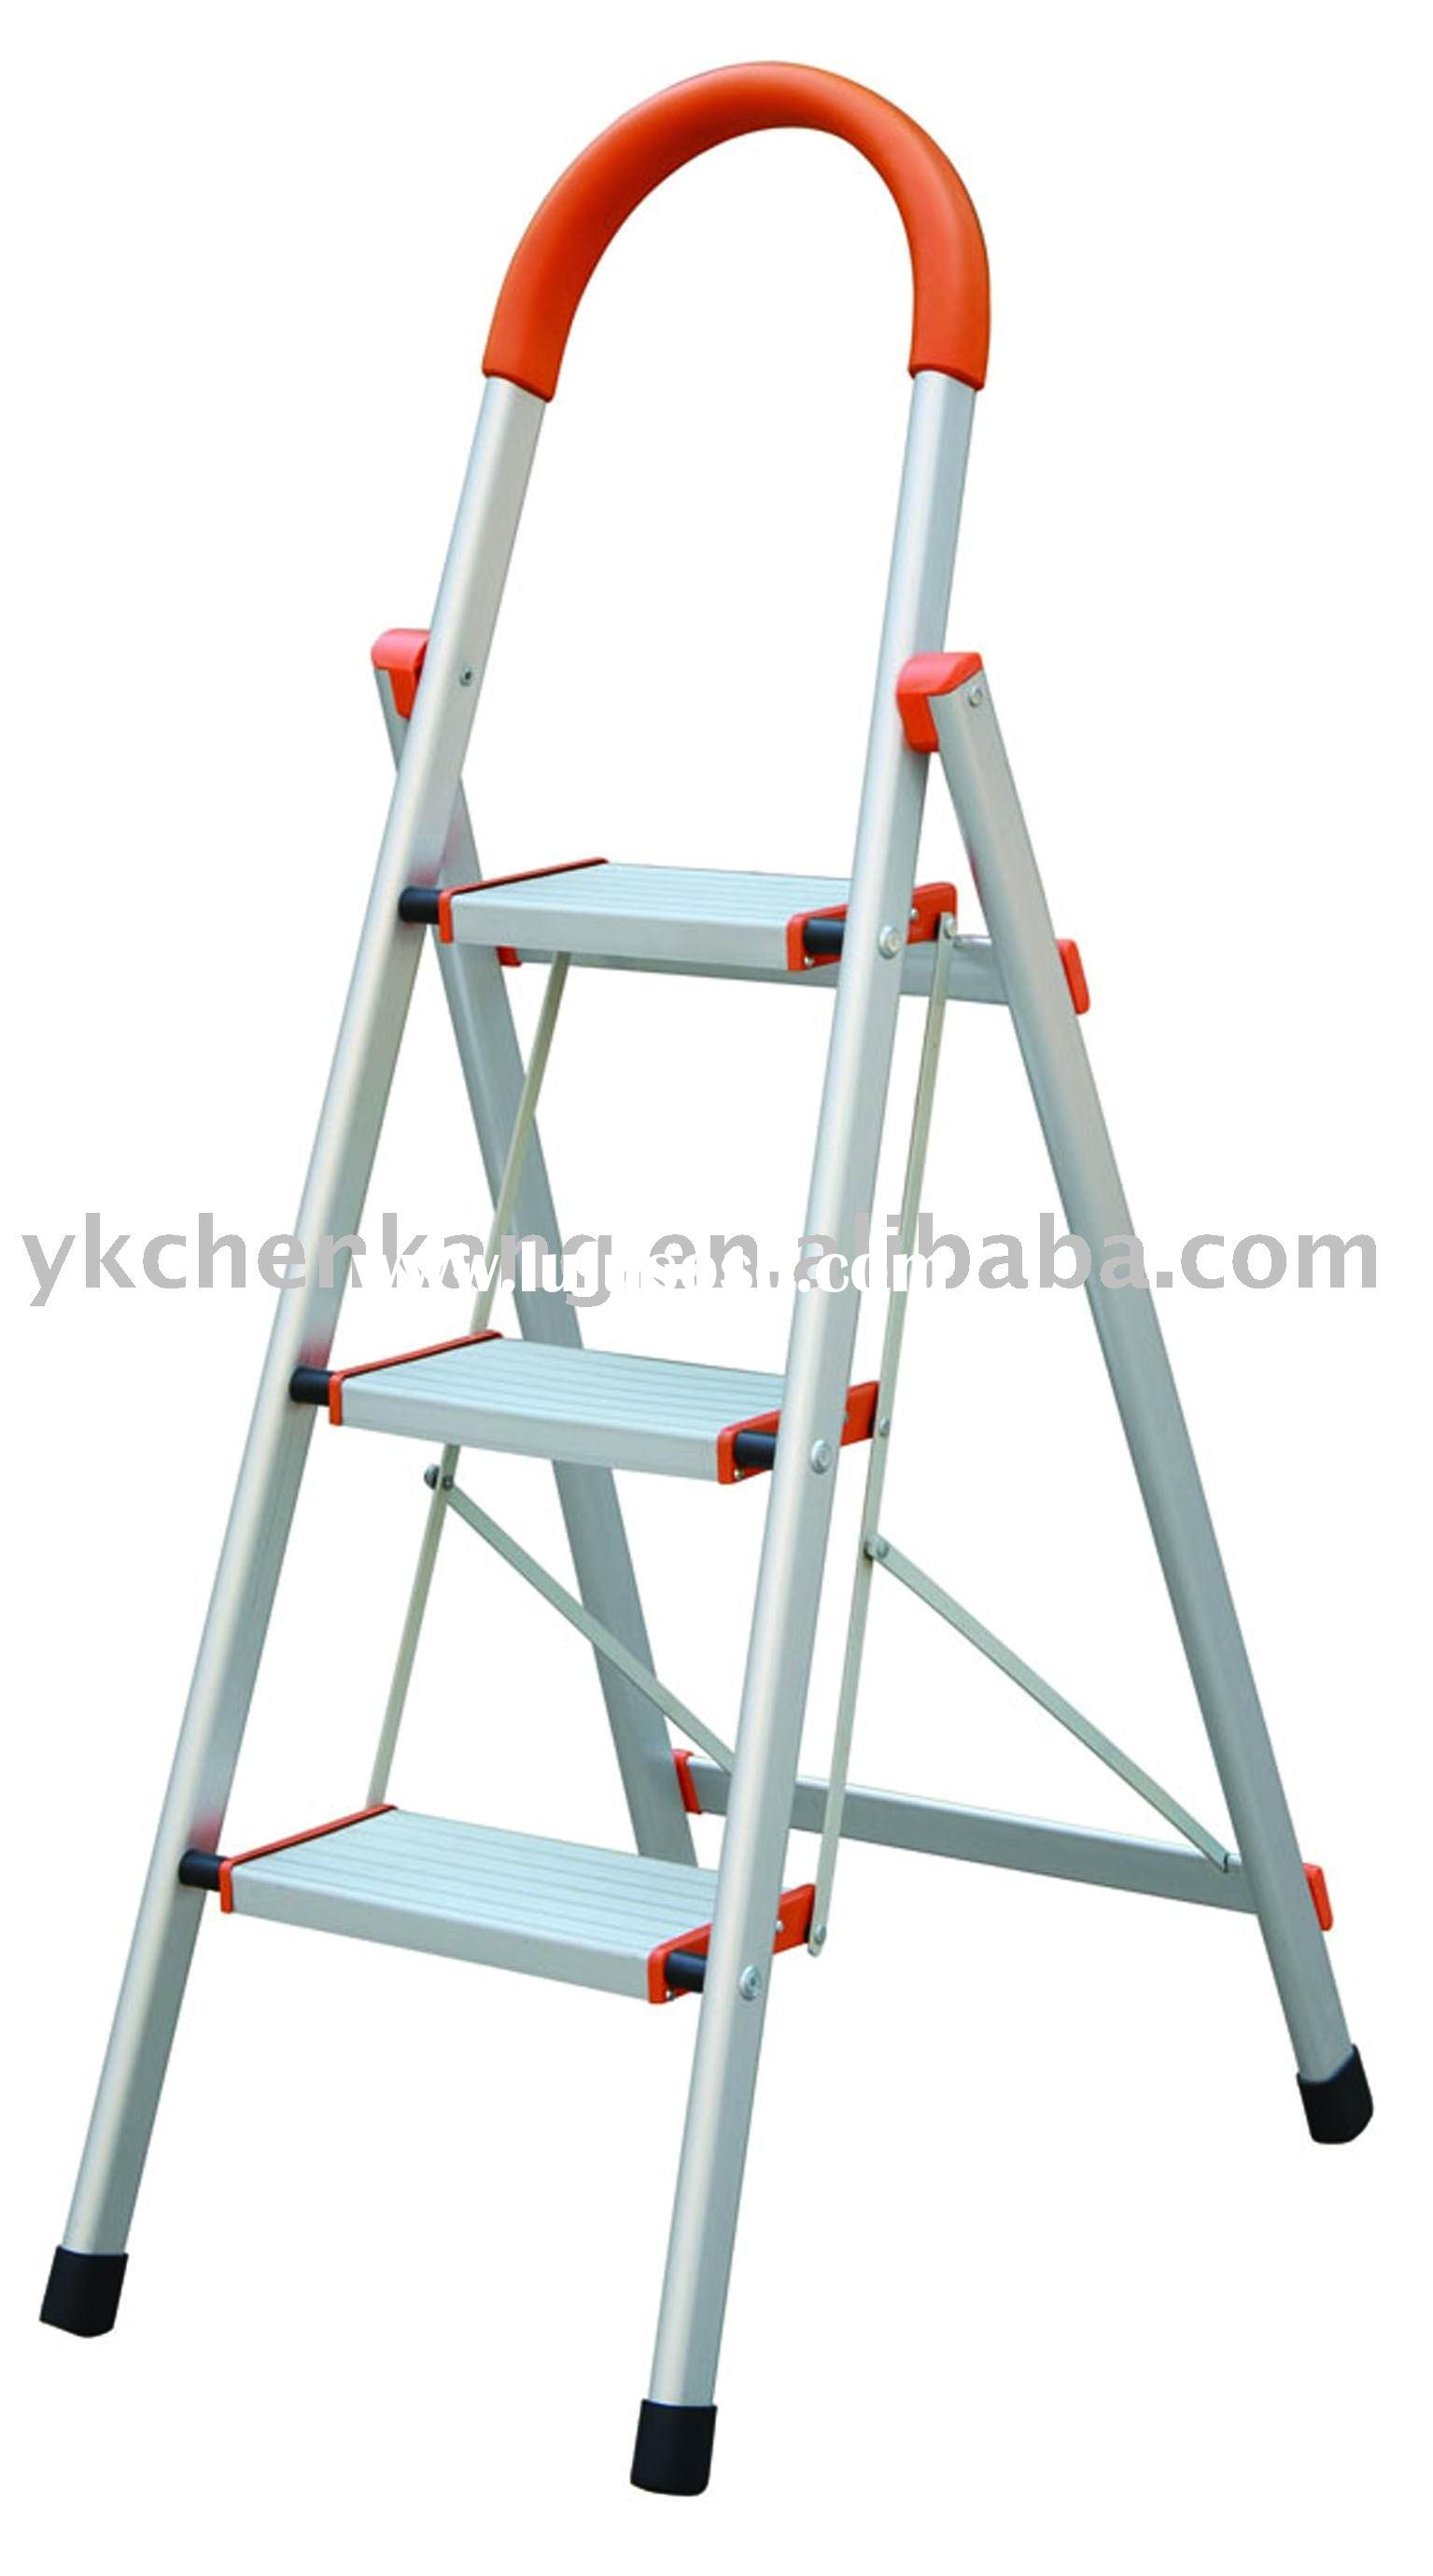 Step Folding Ladder Step Folding Ladder Manufacturers In